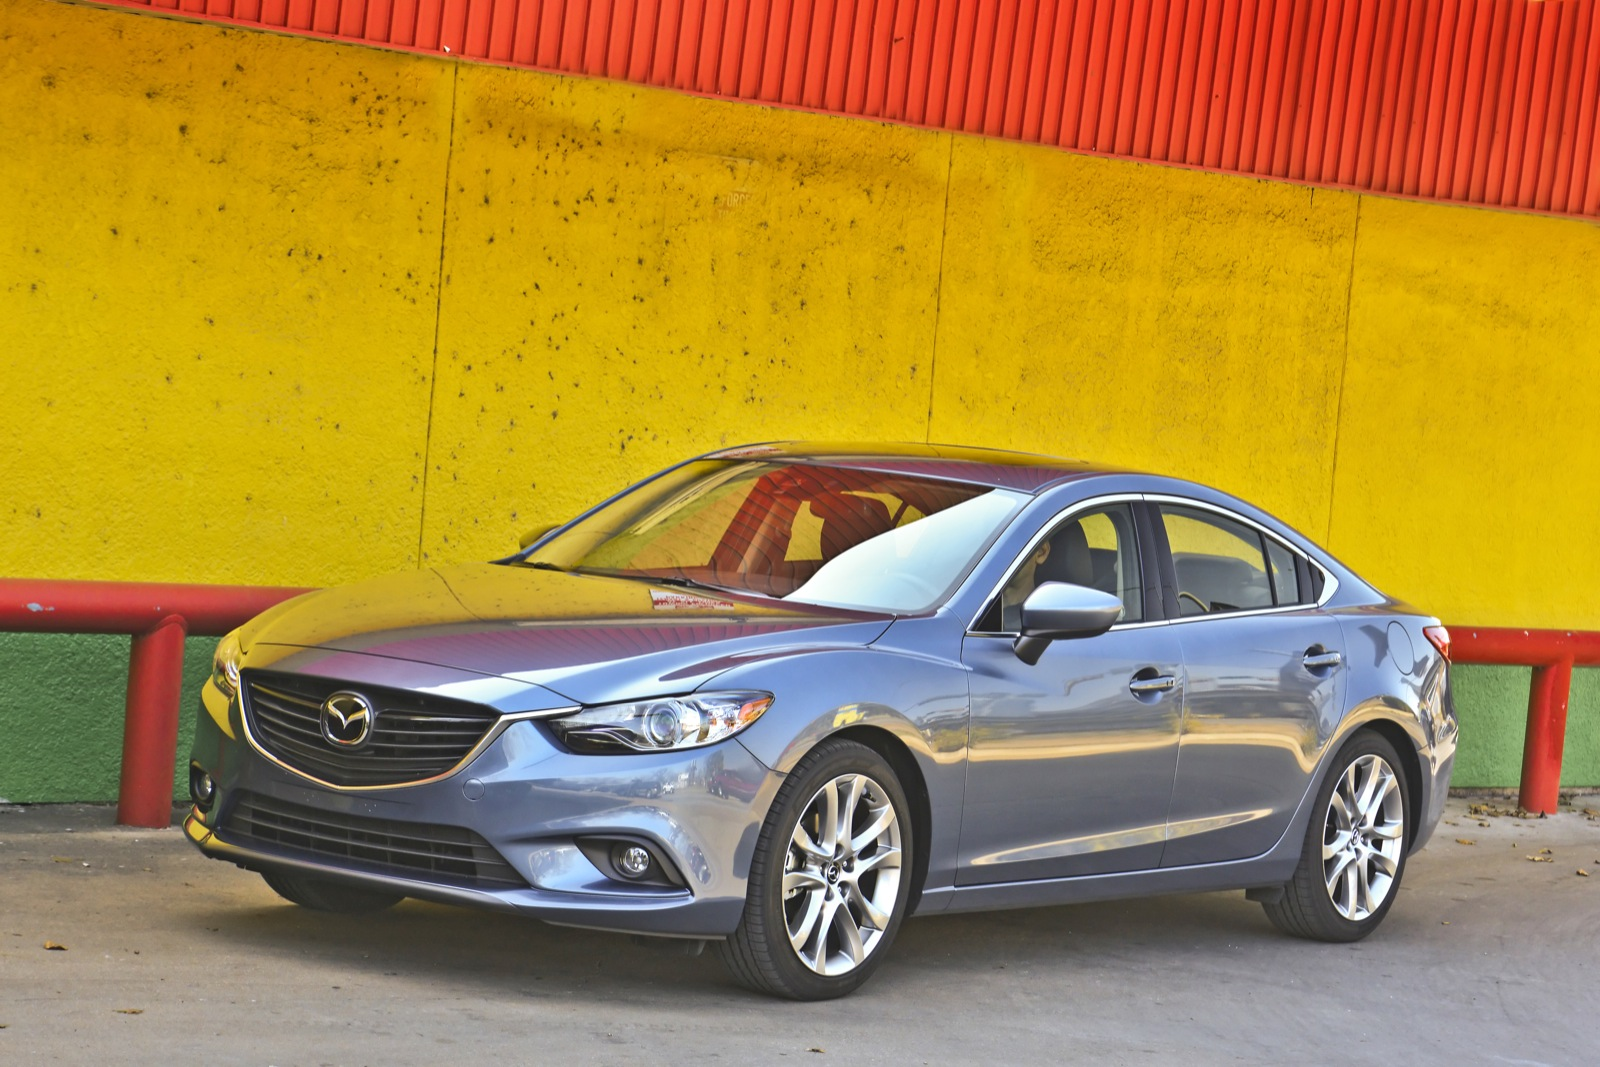 2014 mazda mazda6 review ratings specs prices and photos the car connection. Black Bedroom Furniture Sets. Home Design Ideas